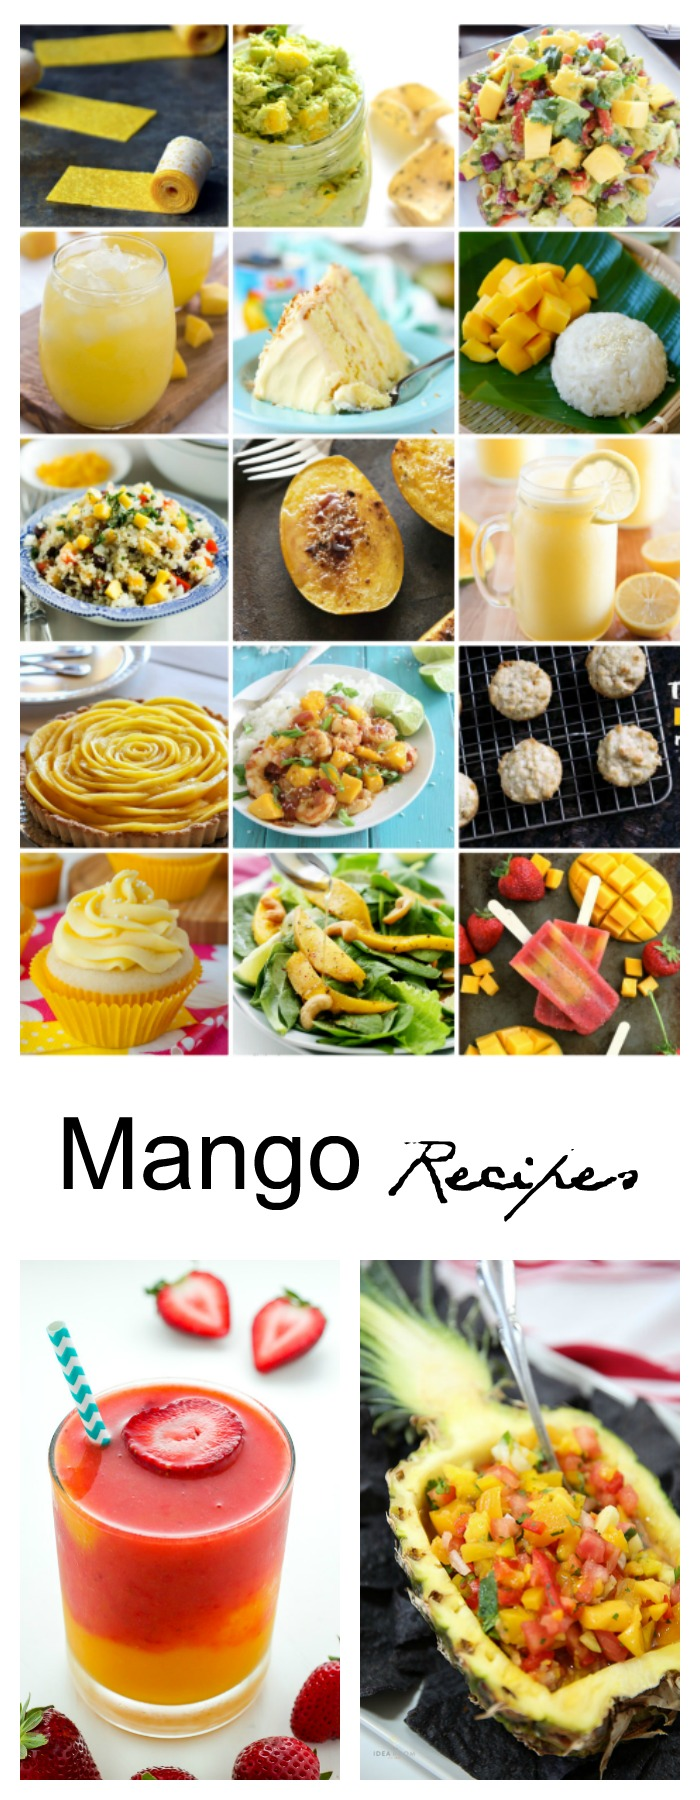 Mango-Recipes-Pin